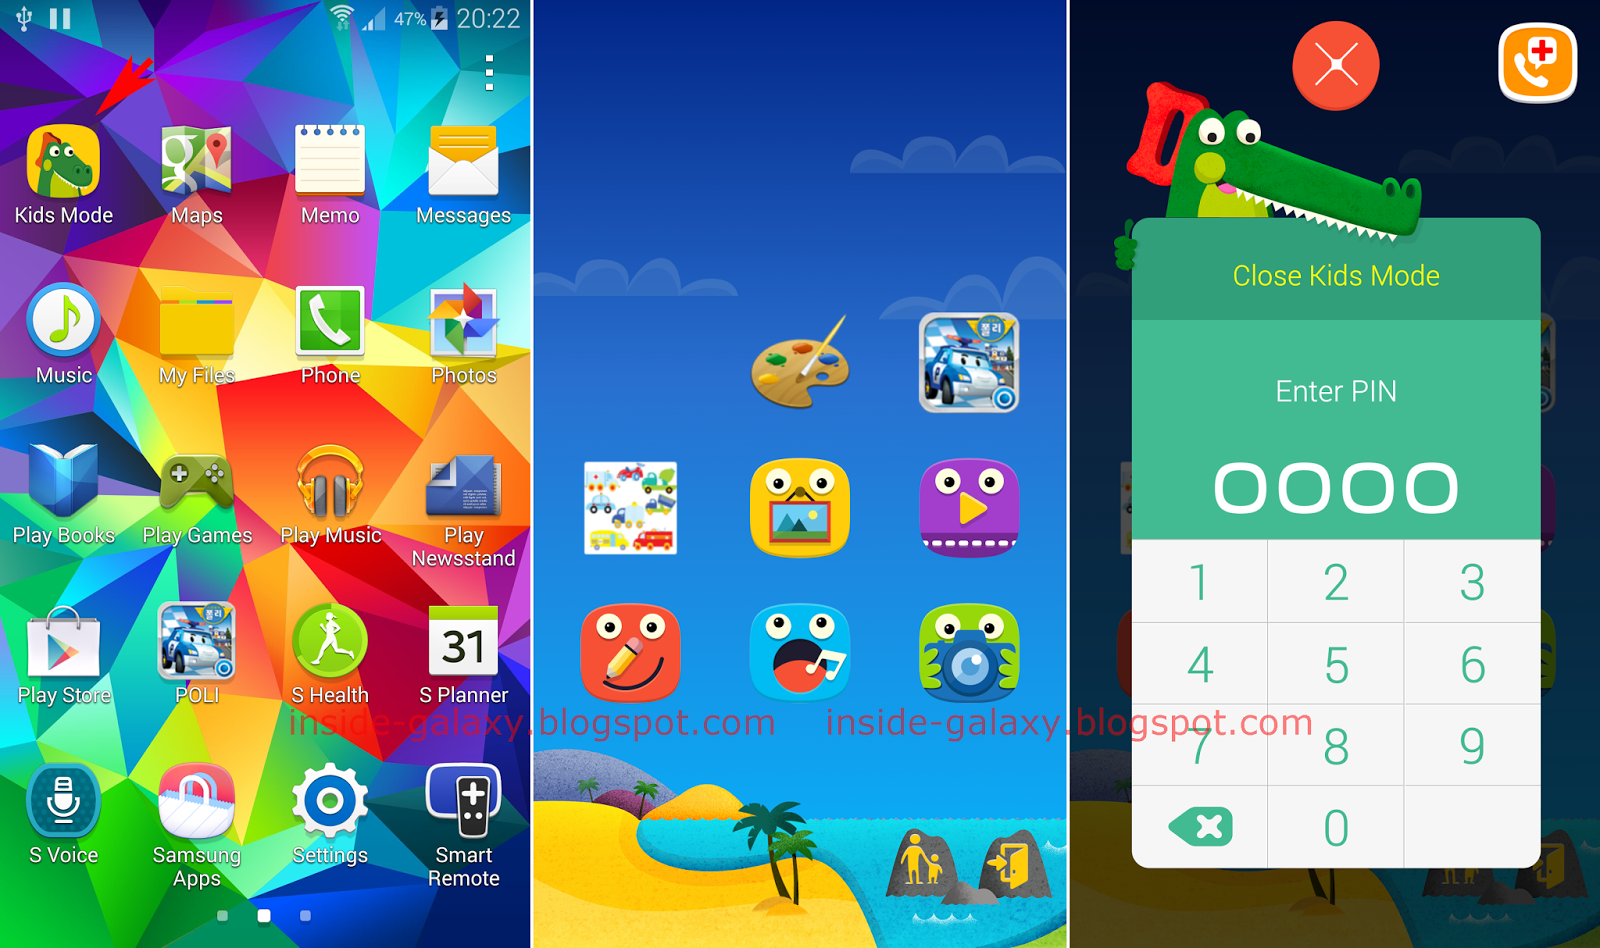 Samsung Galaxy S5 How To Install Configure And Use Kids Mode In